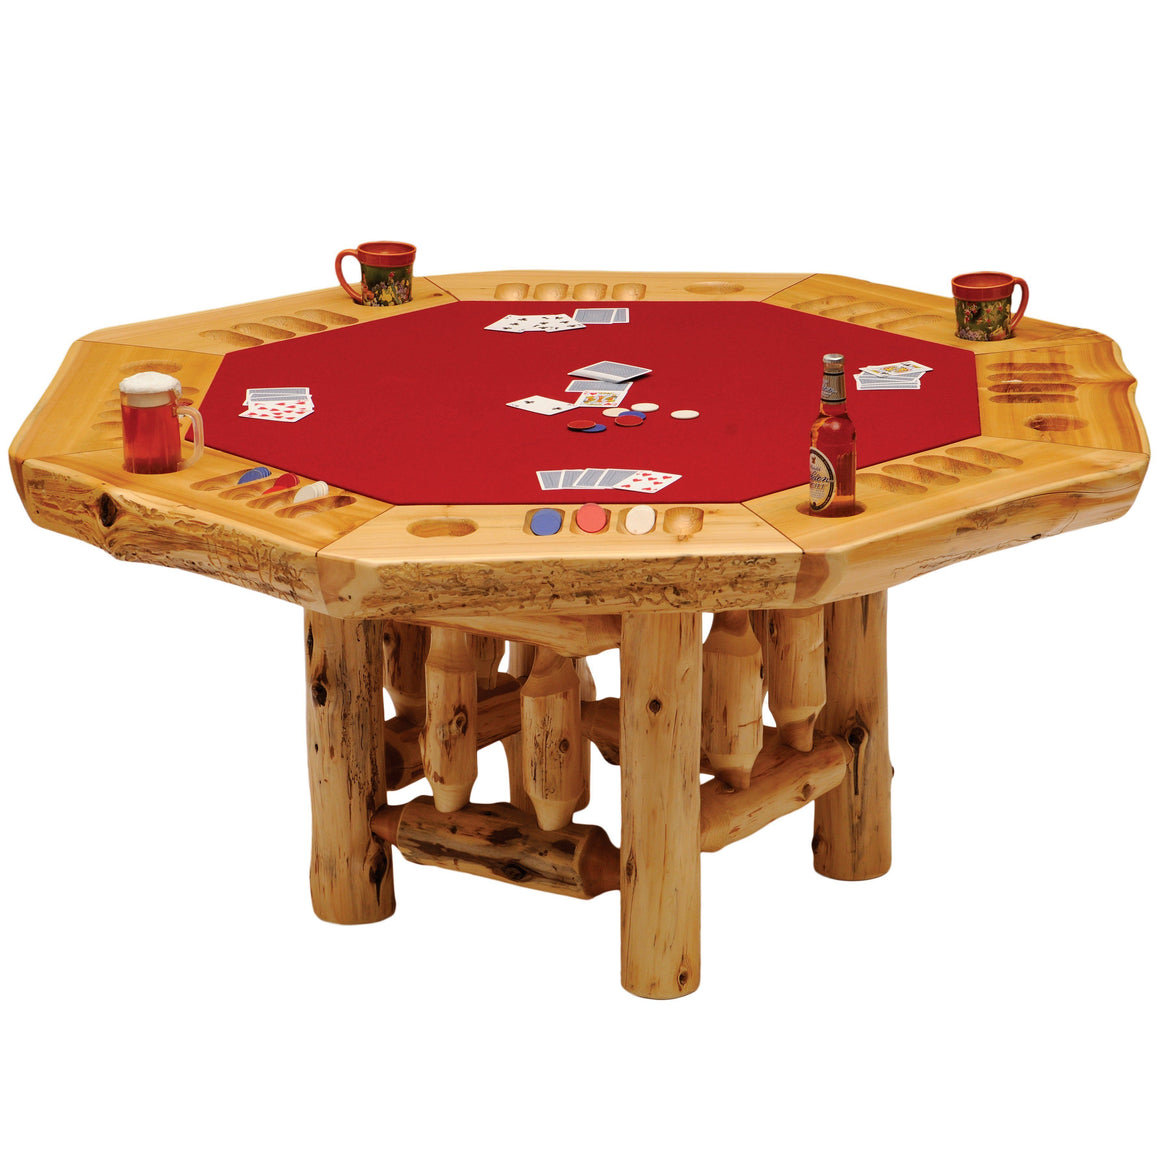 8-sided Cedar Log Poker Table - Armor Finish Top - Optional Dining Table Cover in 3 finishes-Rustic Deco Incorporated